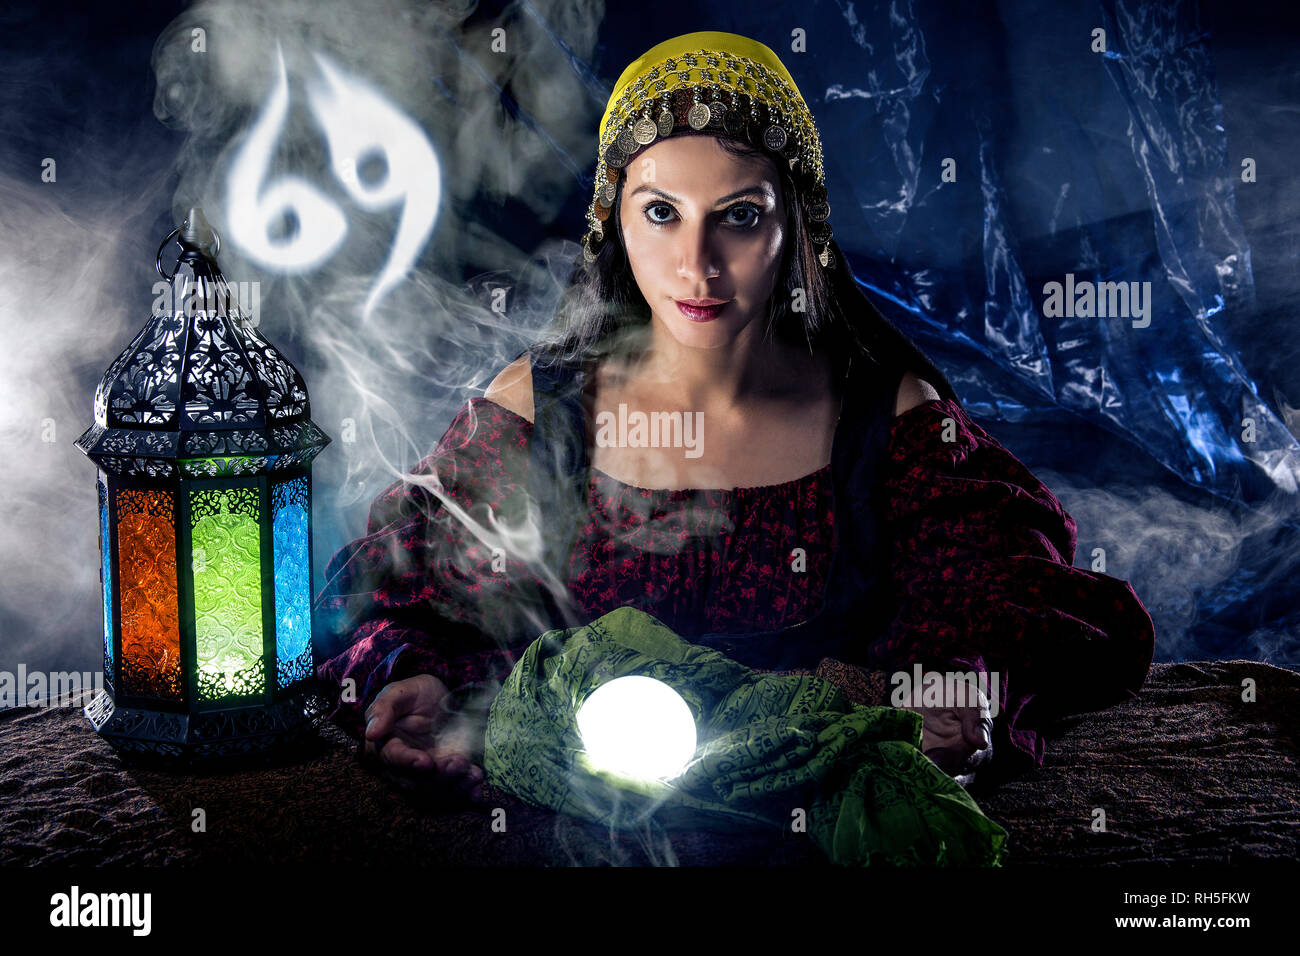 Psychic or fortune teller with crystal ball and horoscope zodiac sign of cancer - Stock Image